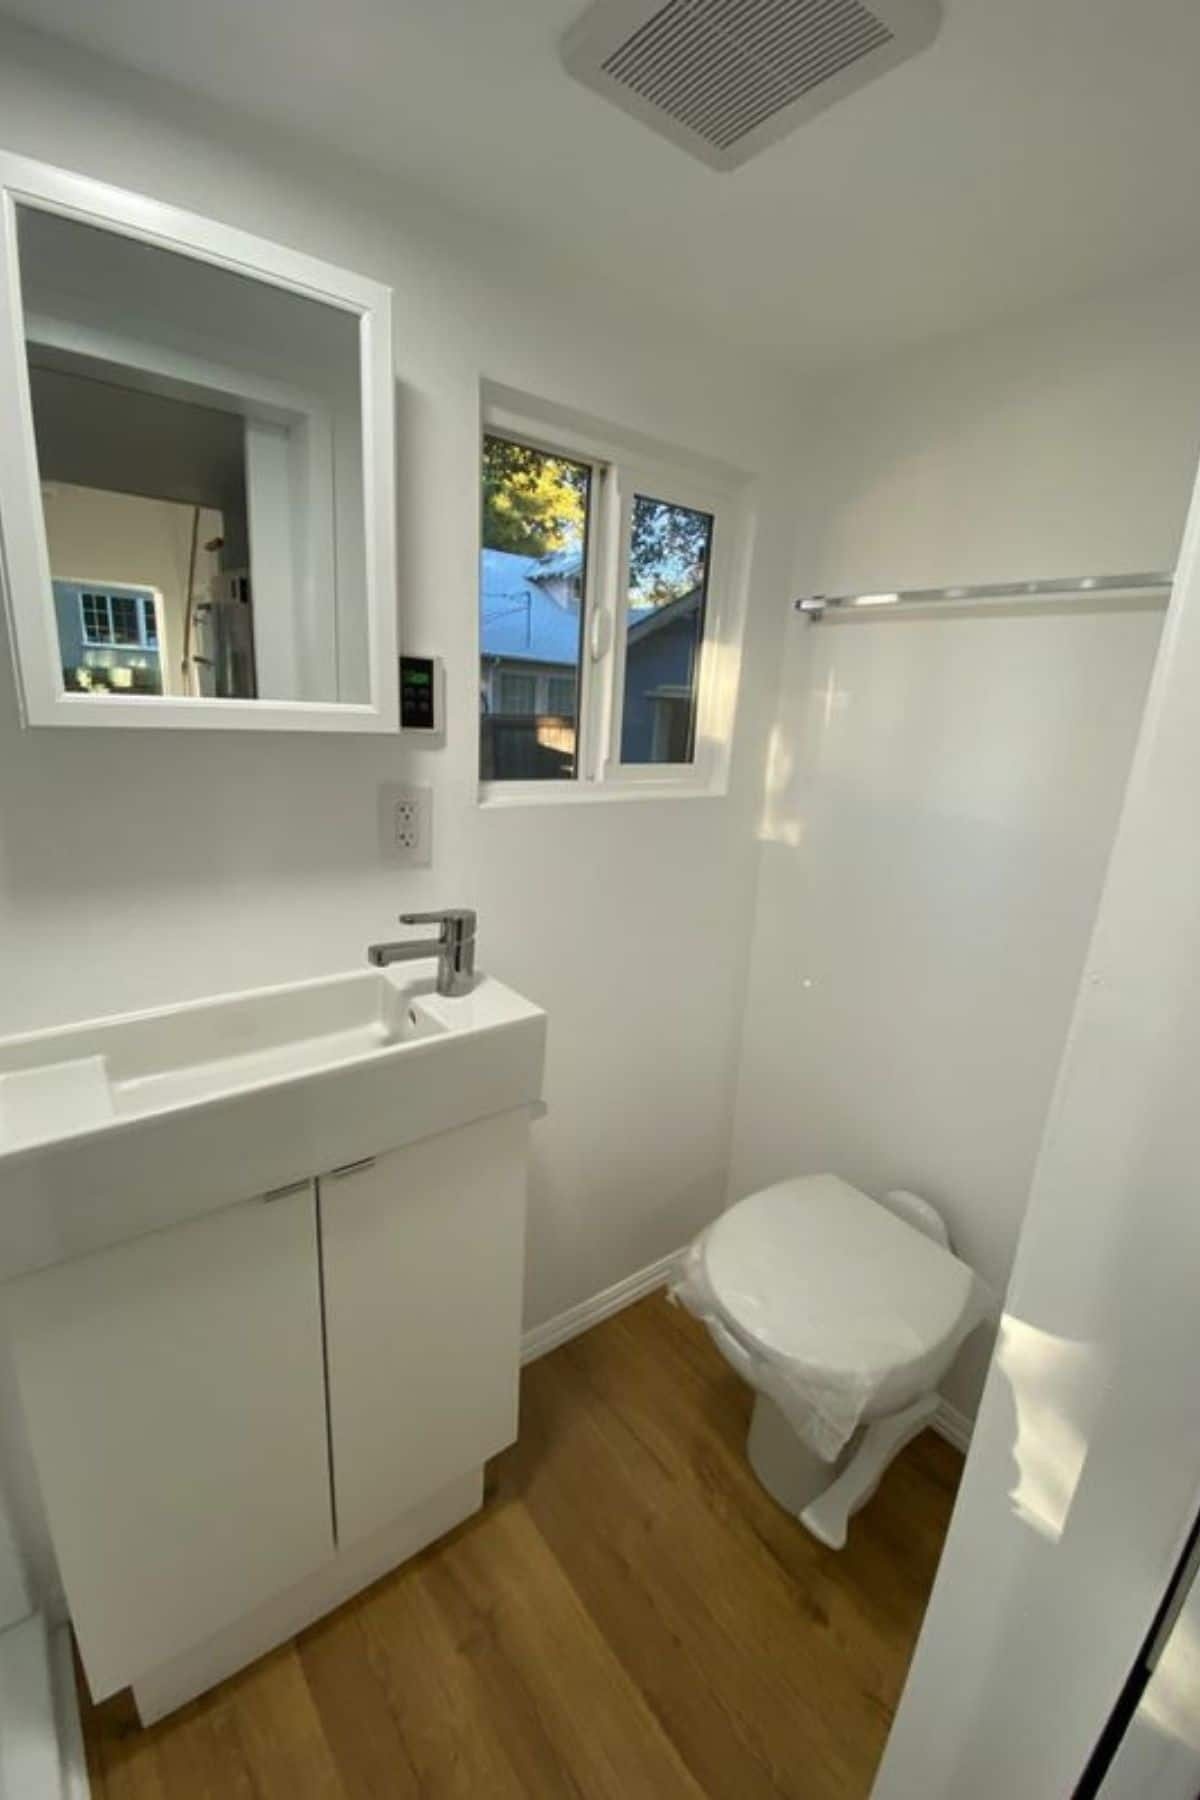 white vanity with medicine cabinet above and compost toilet to right